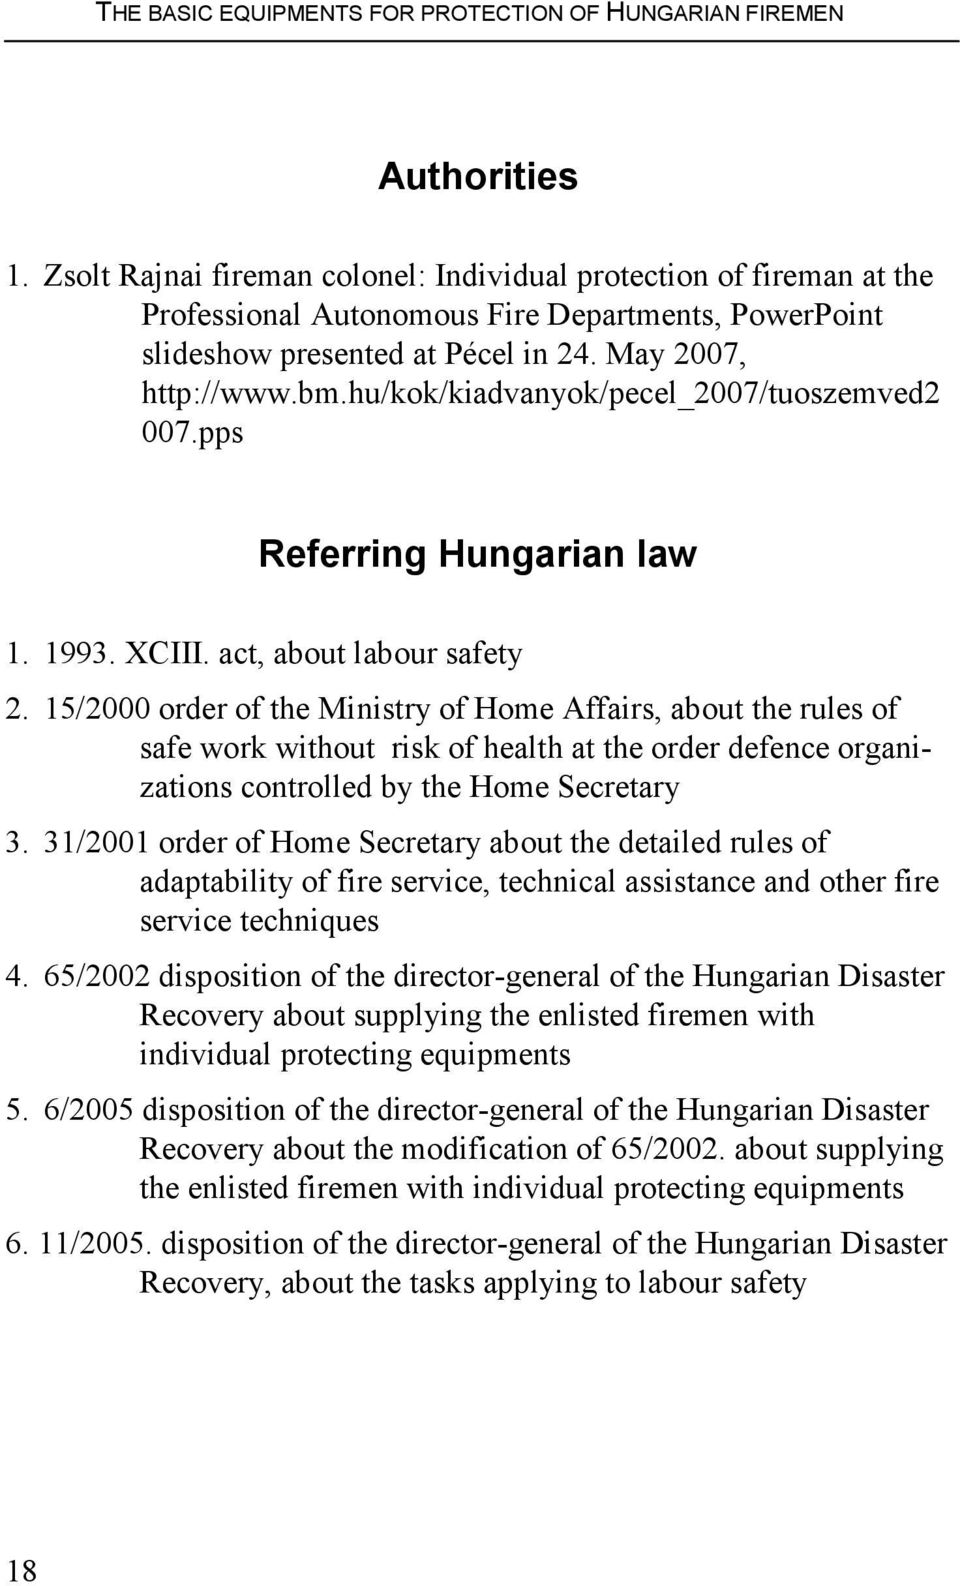 hu/kok/kiadvanyok/pecel_2007/tuoszemved2 007.pps Referring Hungarian law 1. 1993. XCIII. act, about labour safety 2.